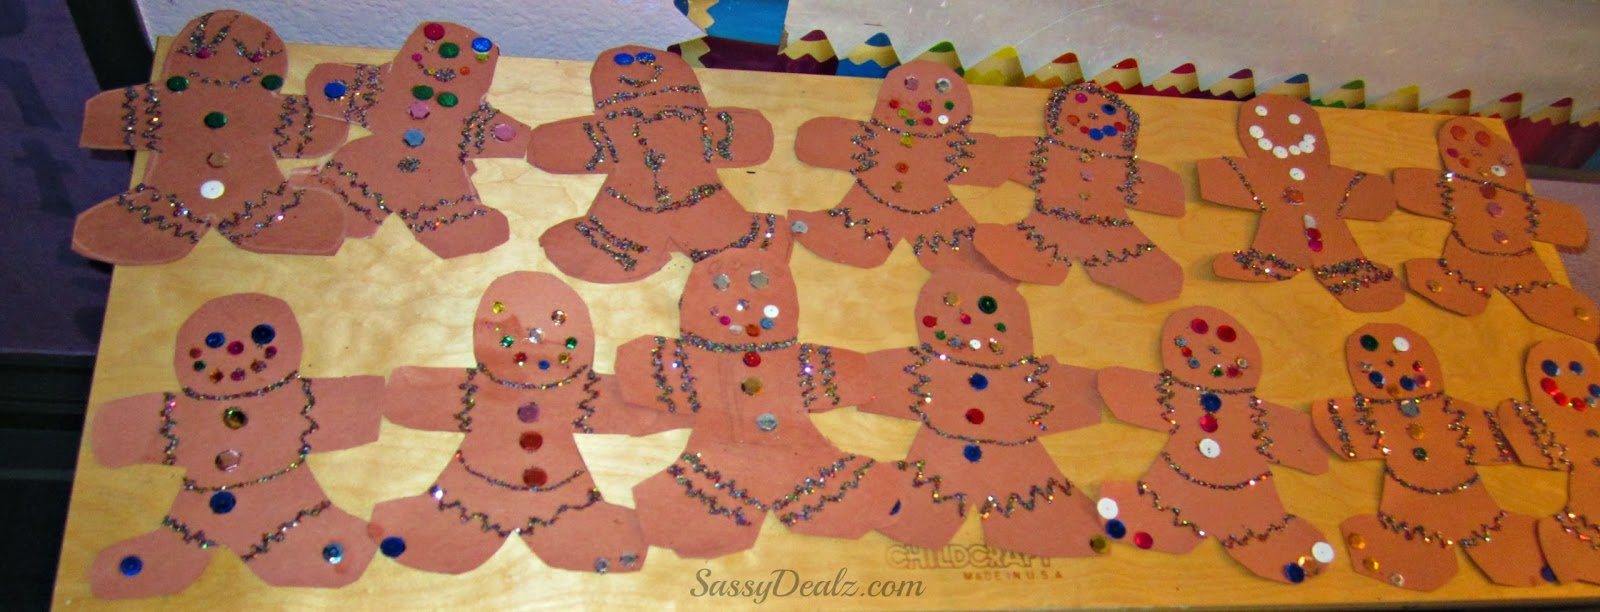 Gingerbread Man Arts And Crafts For Kindergarten